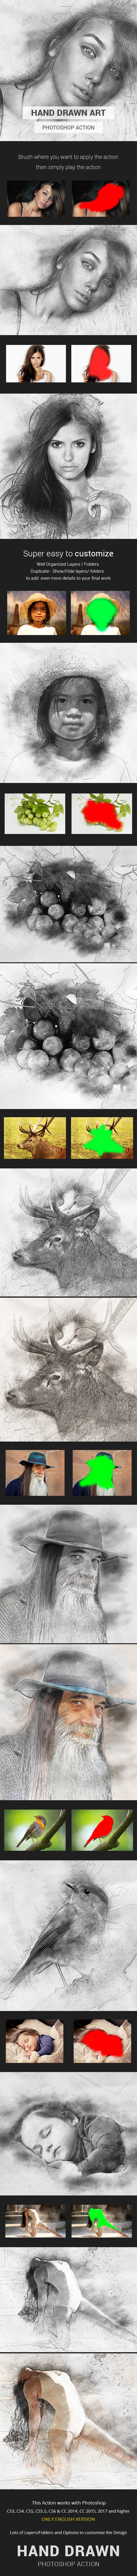 Hand Drawn Art Photoshop Action - Photo Effects Actions